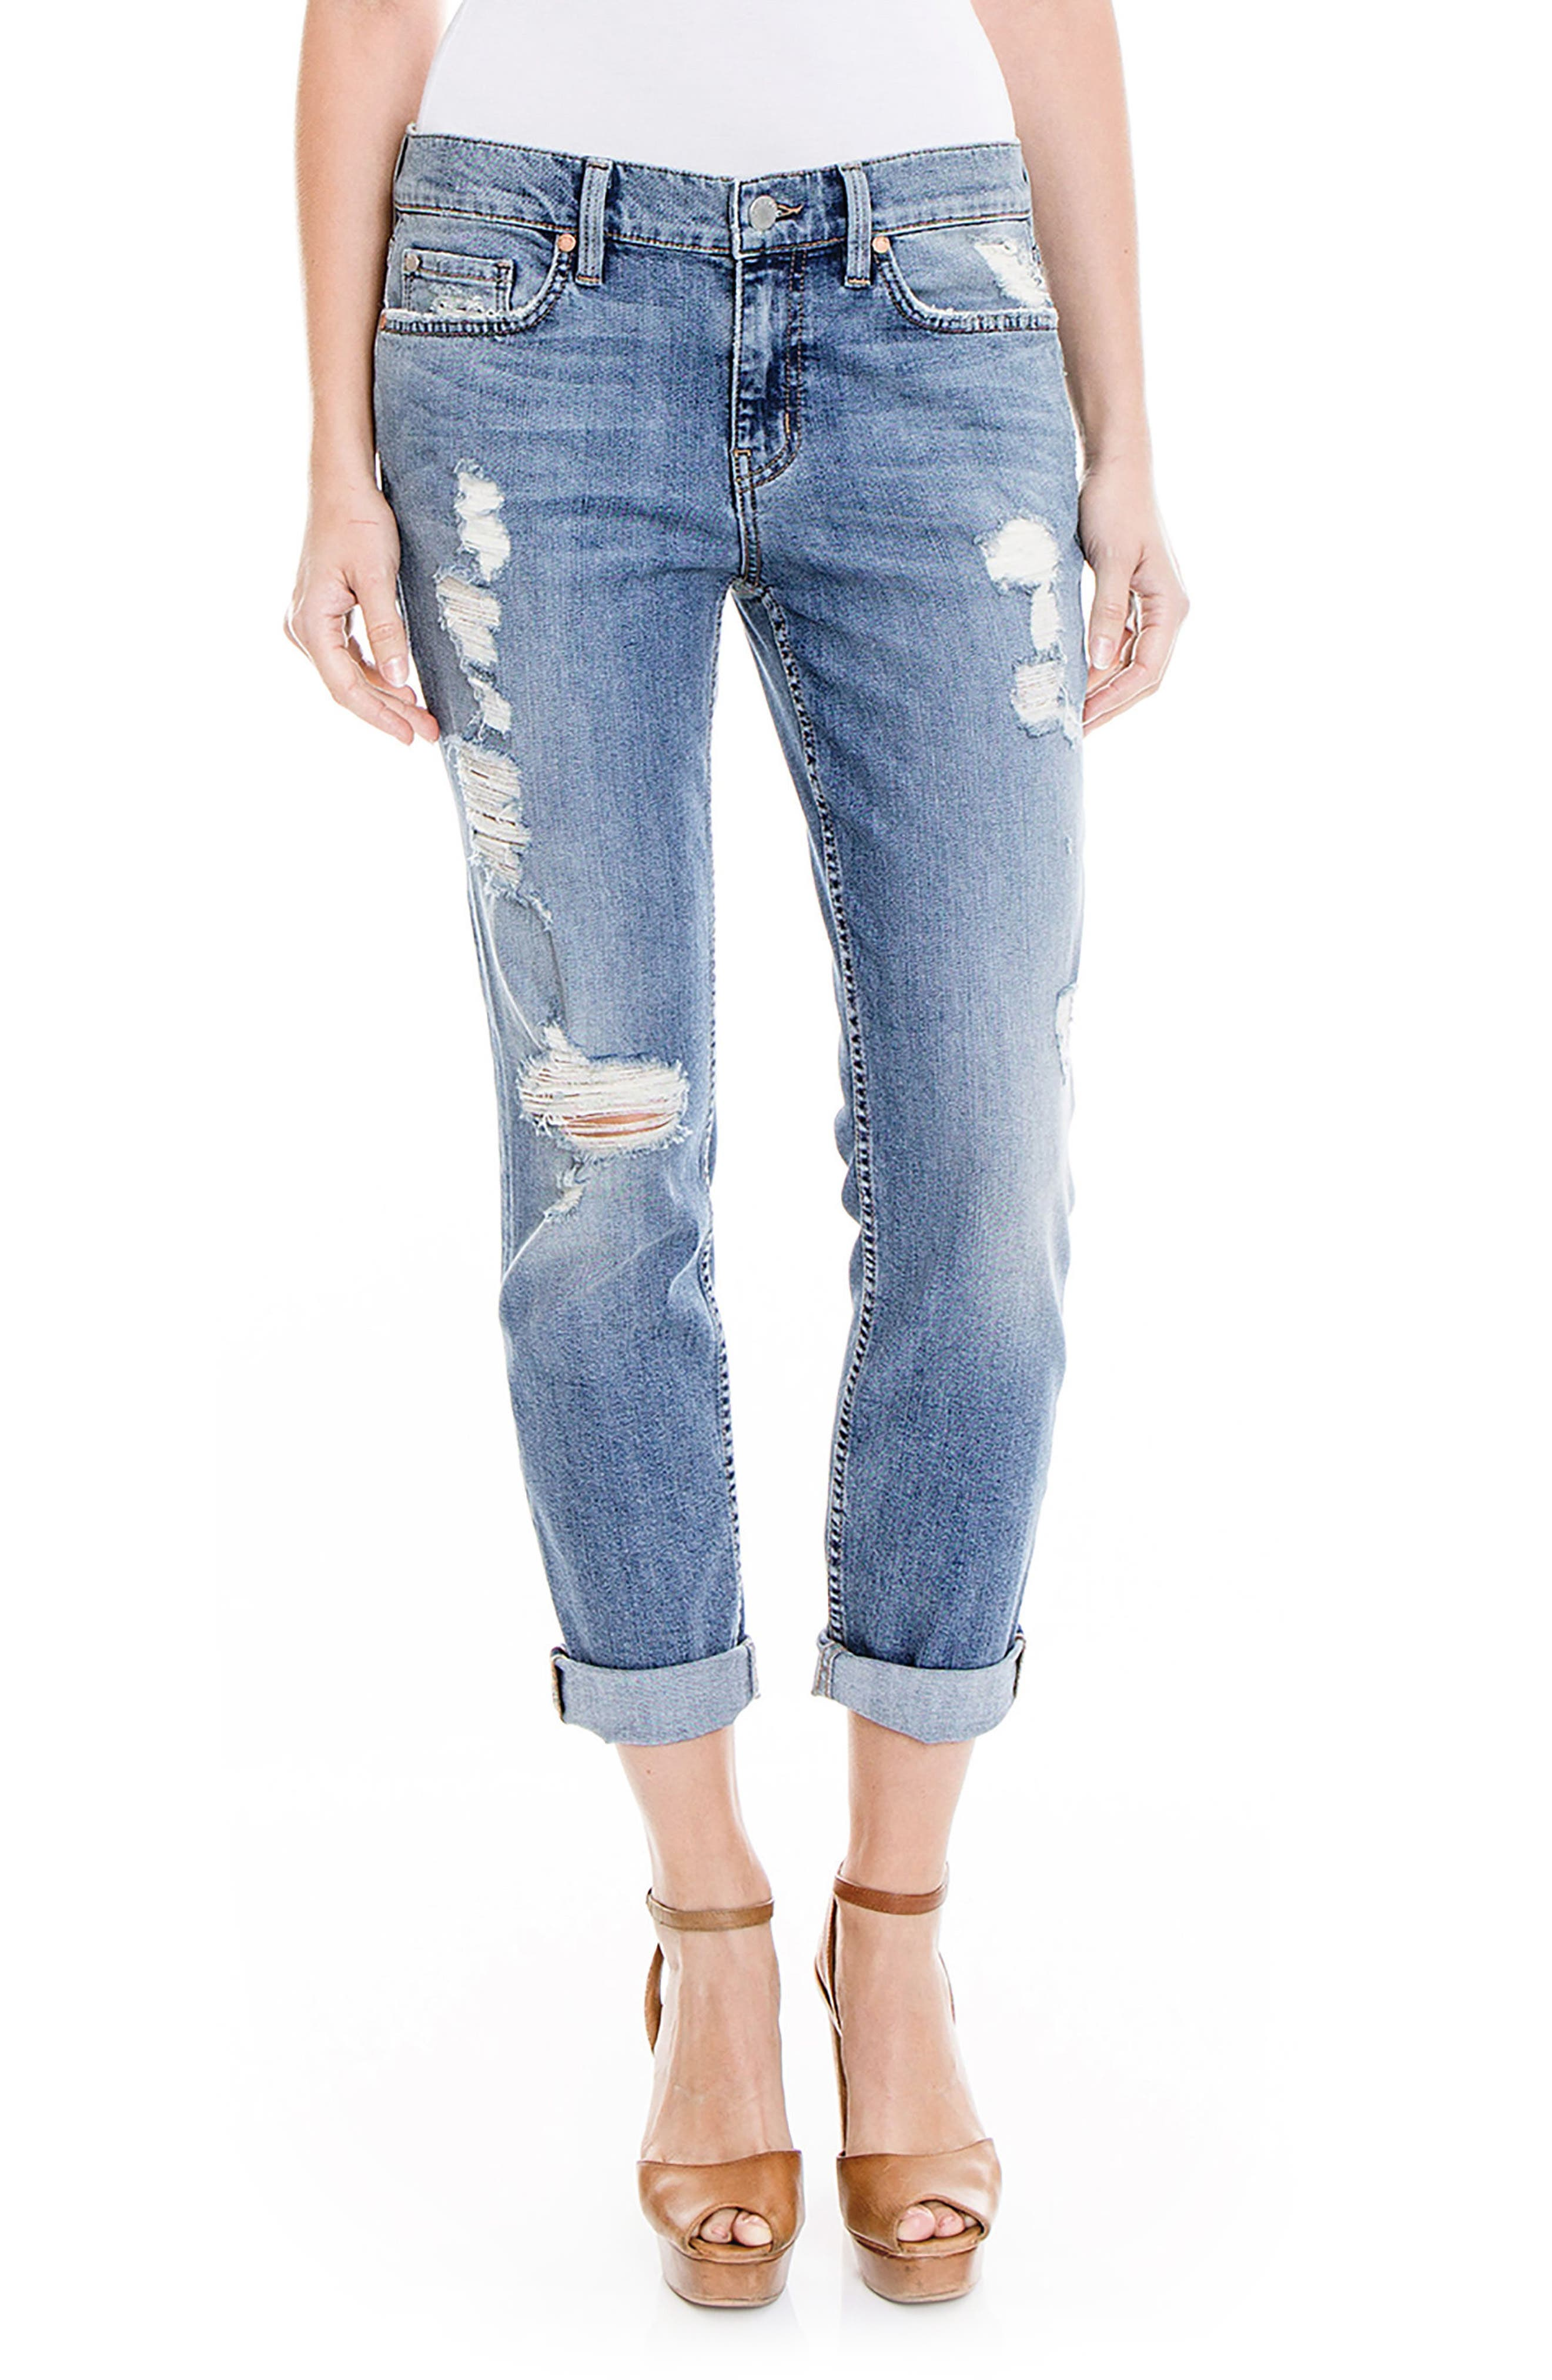 Alternate Image 1 Selected - Level 99 Sienna Stretch Distressed Ankle Cuff Jeans